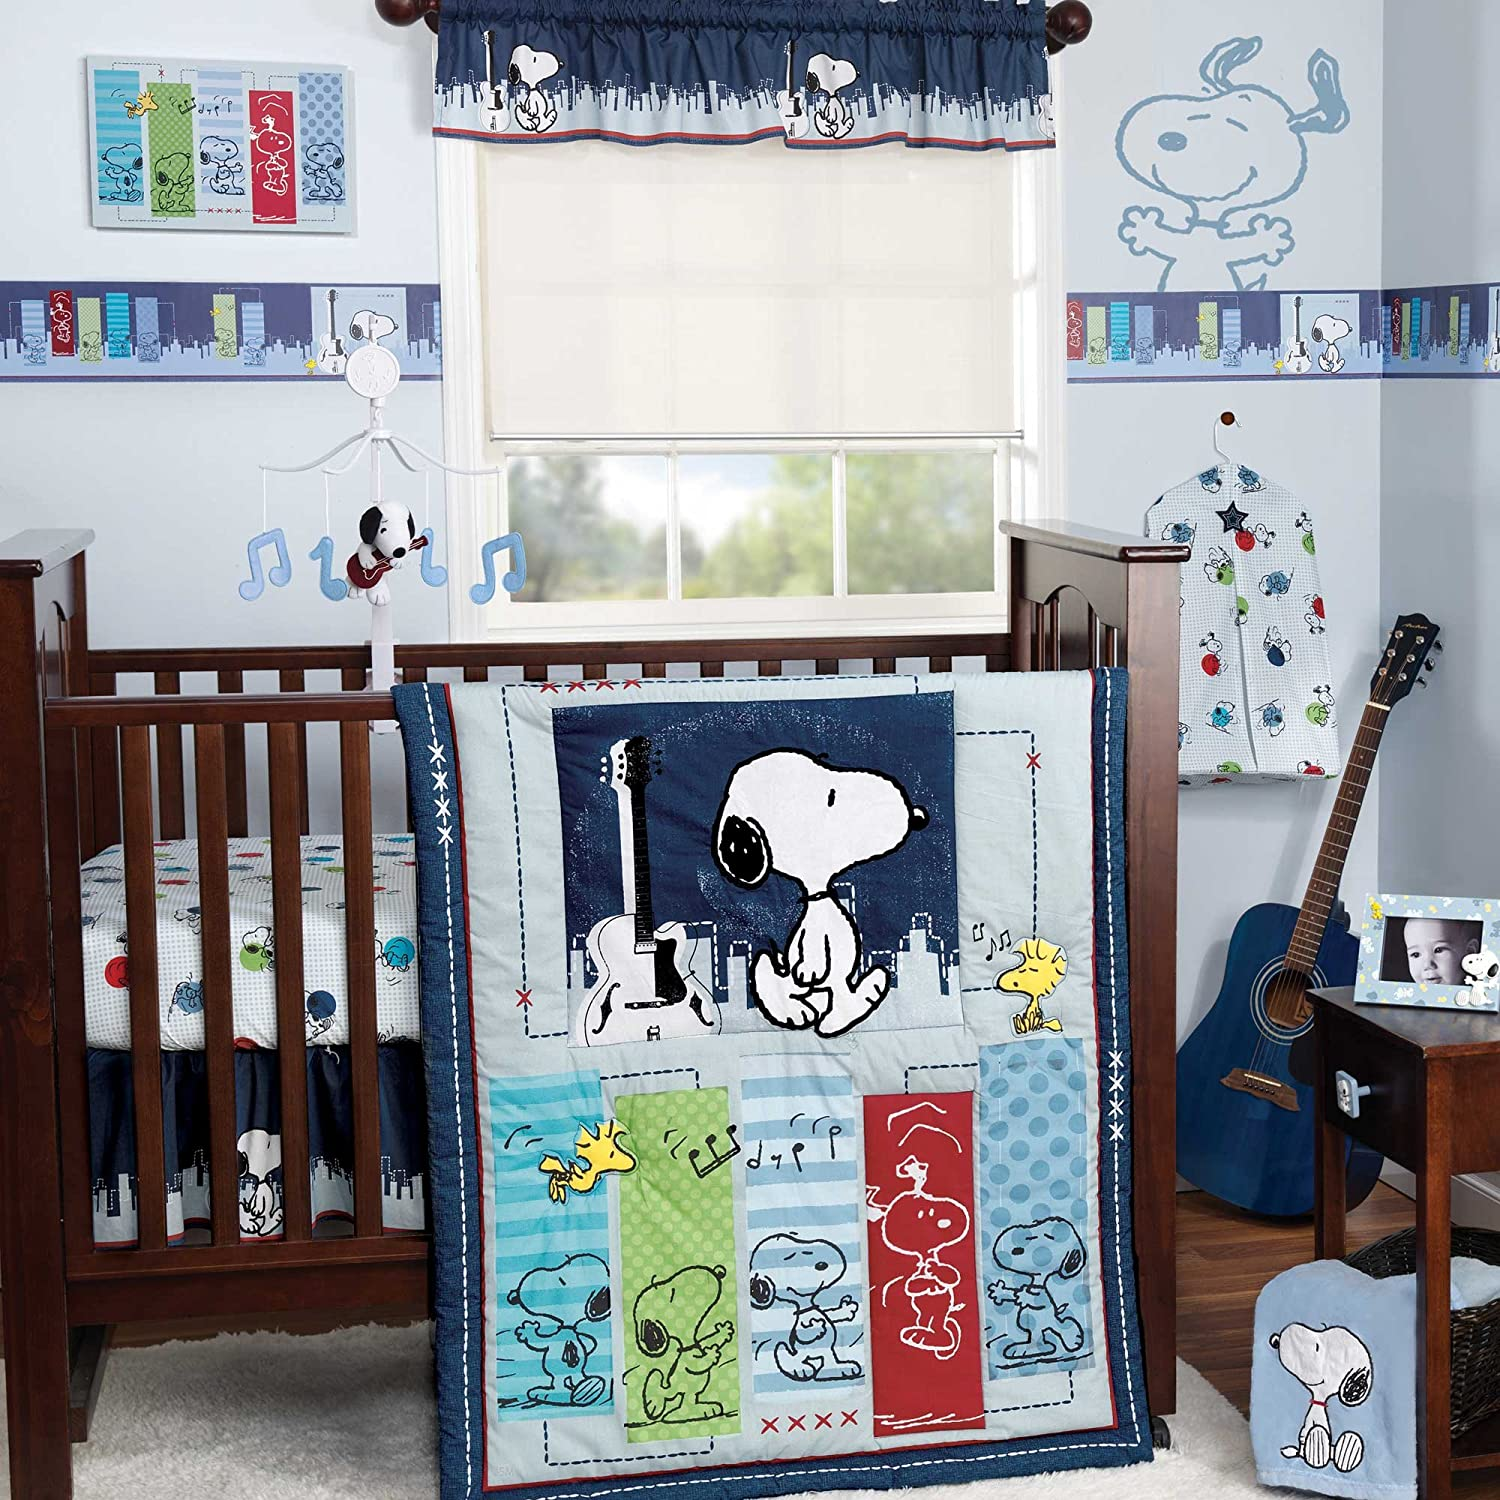 the baby boys bed bedding collection unique show ignite for crib gender teddy nursery neutral sets is awesome bear perfect of